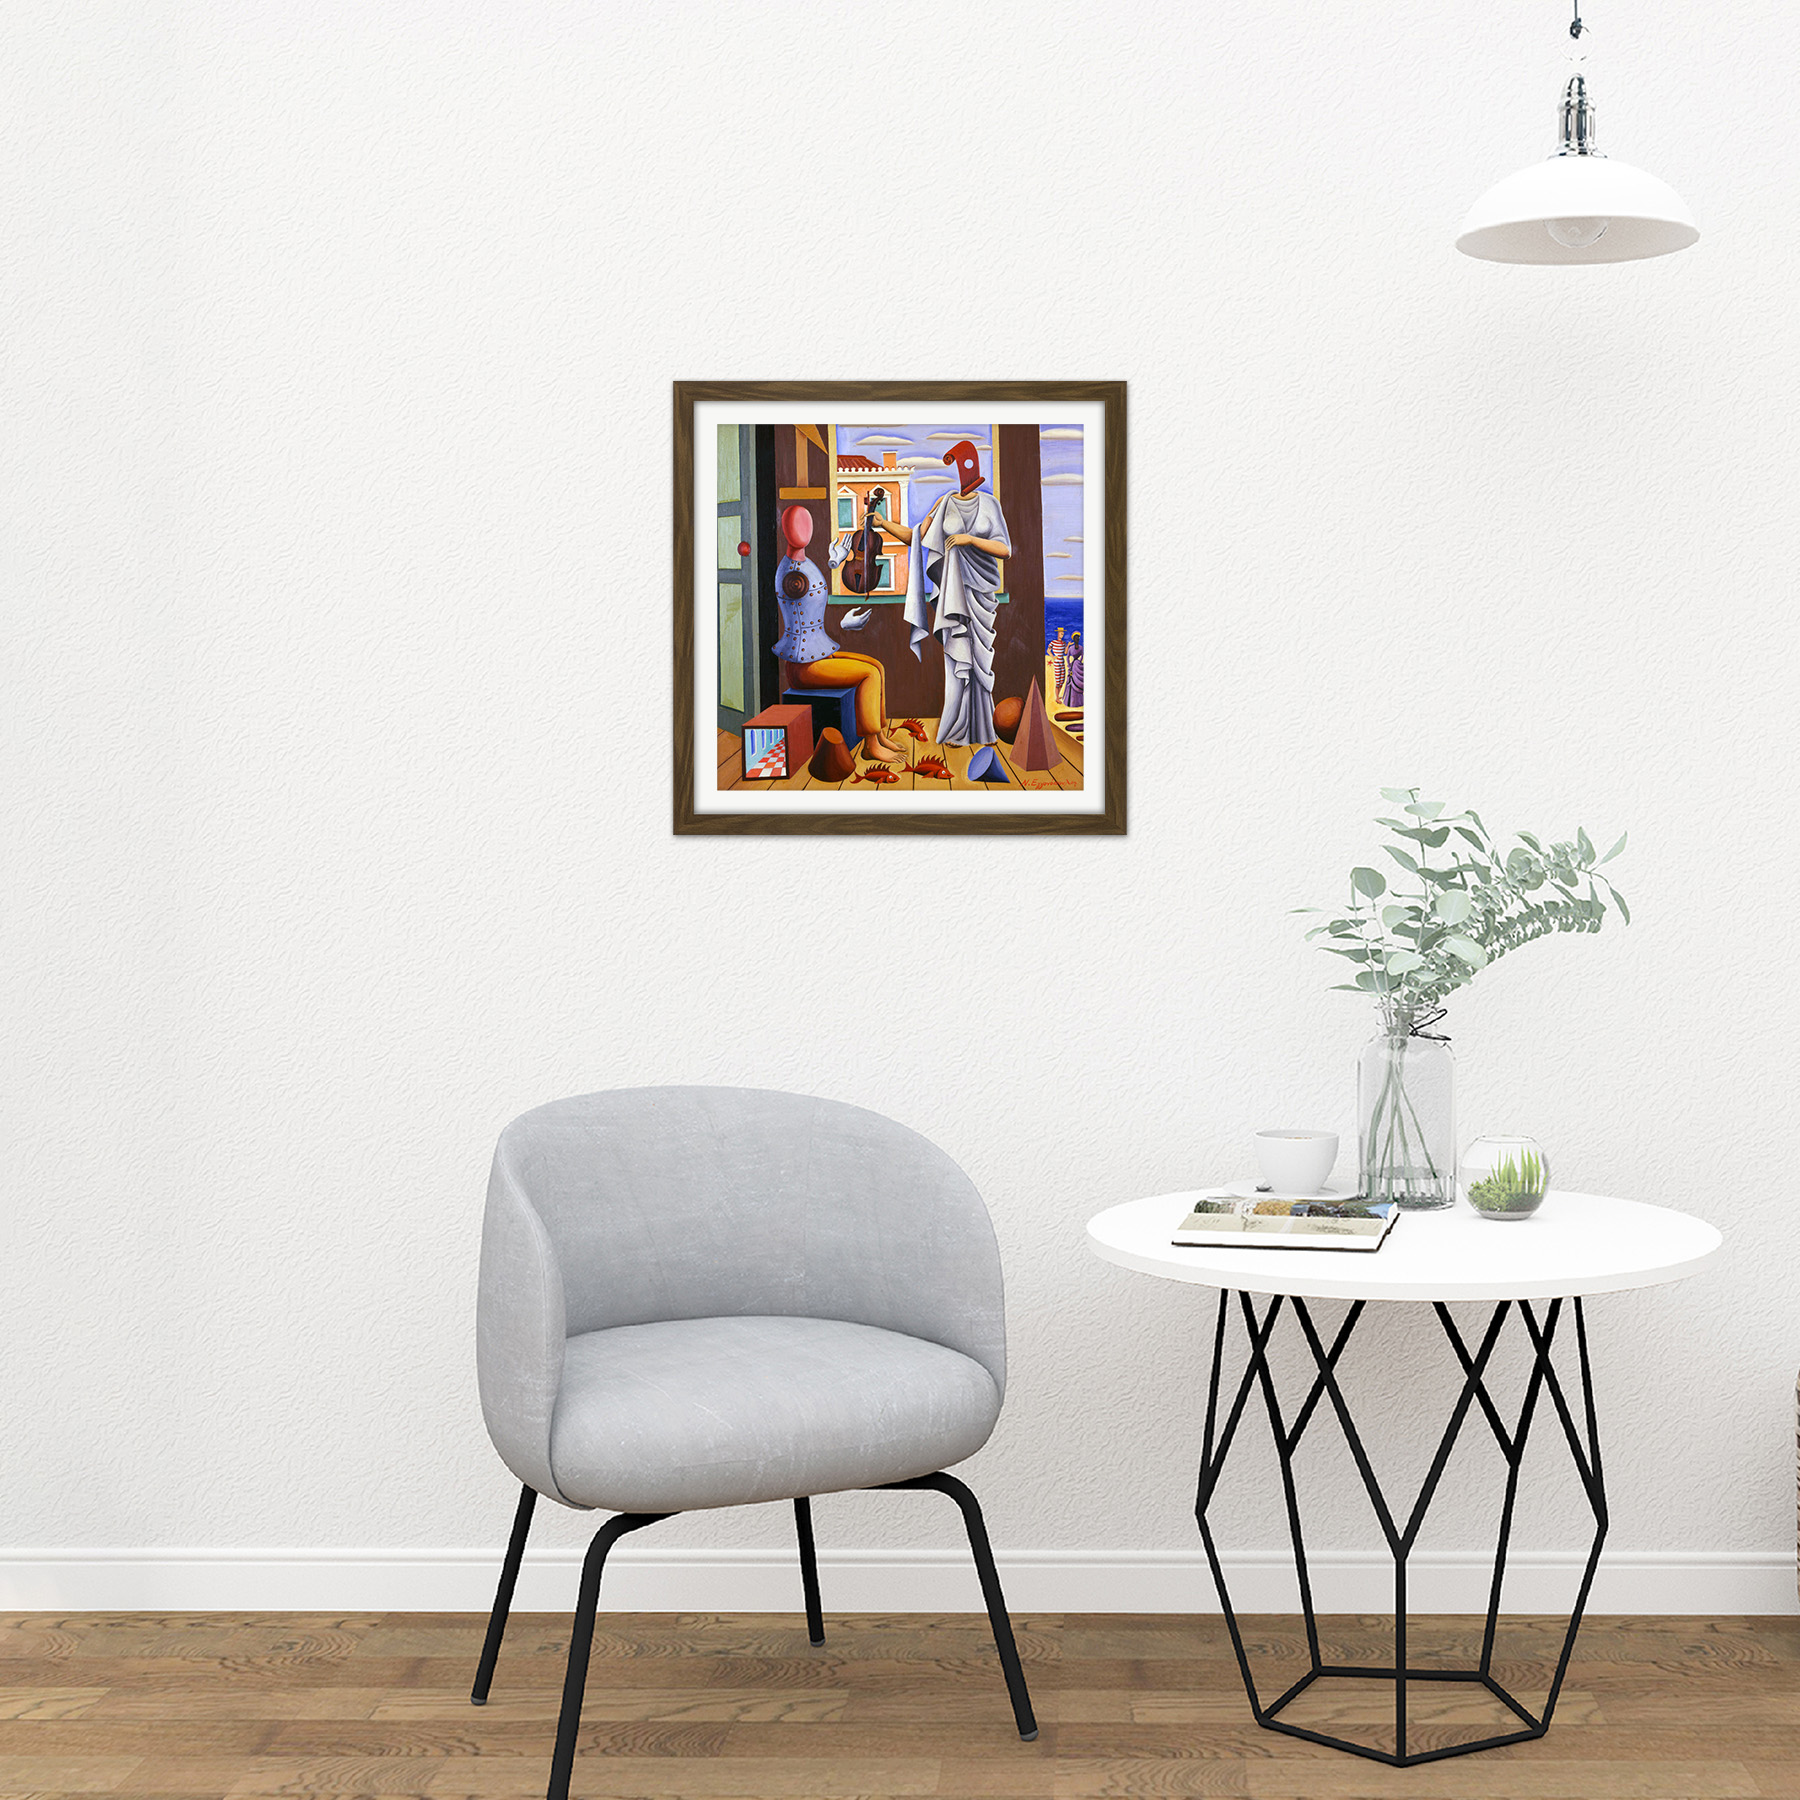 Nikos-Engonopoulos-Poet-And-Muse-Square-Framed-Wall-Art-16X16-In thumbnail 8